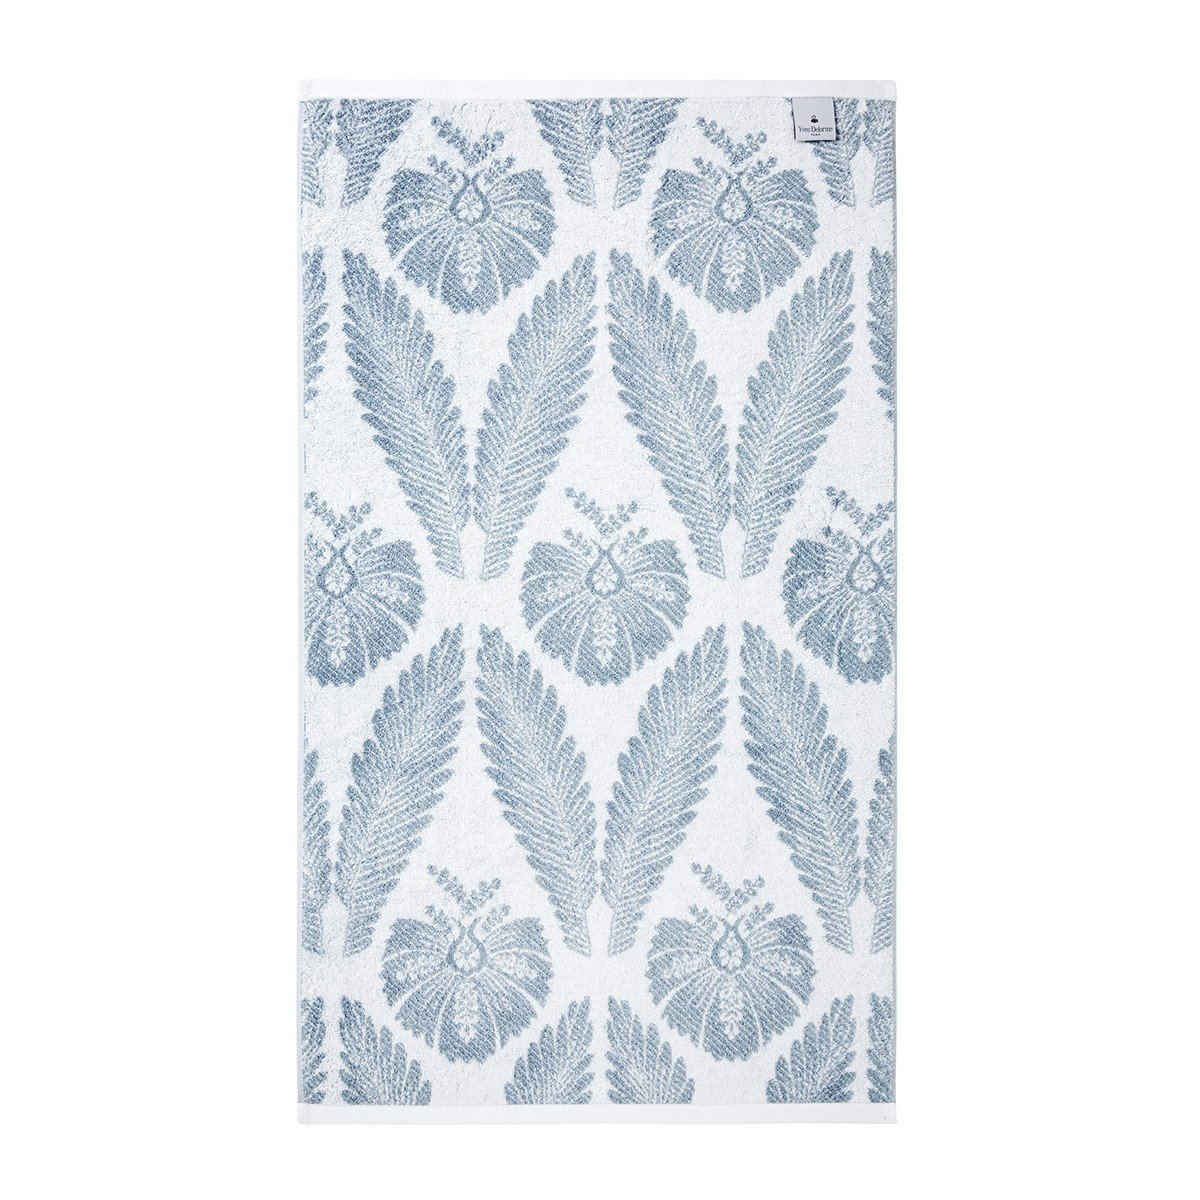 Yves Delorme Palmes Bath Towel Collection | Fig Linens, Blue bath, guest towel - back